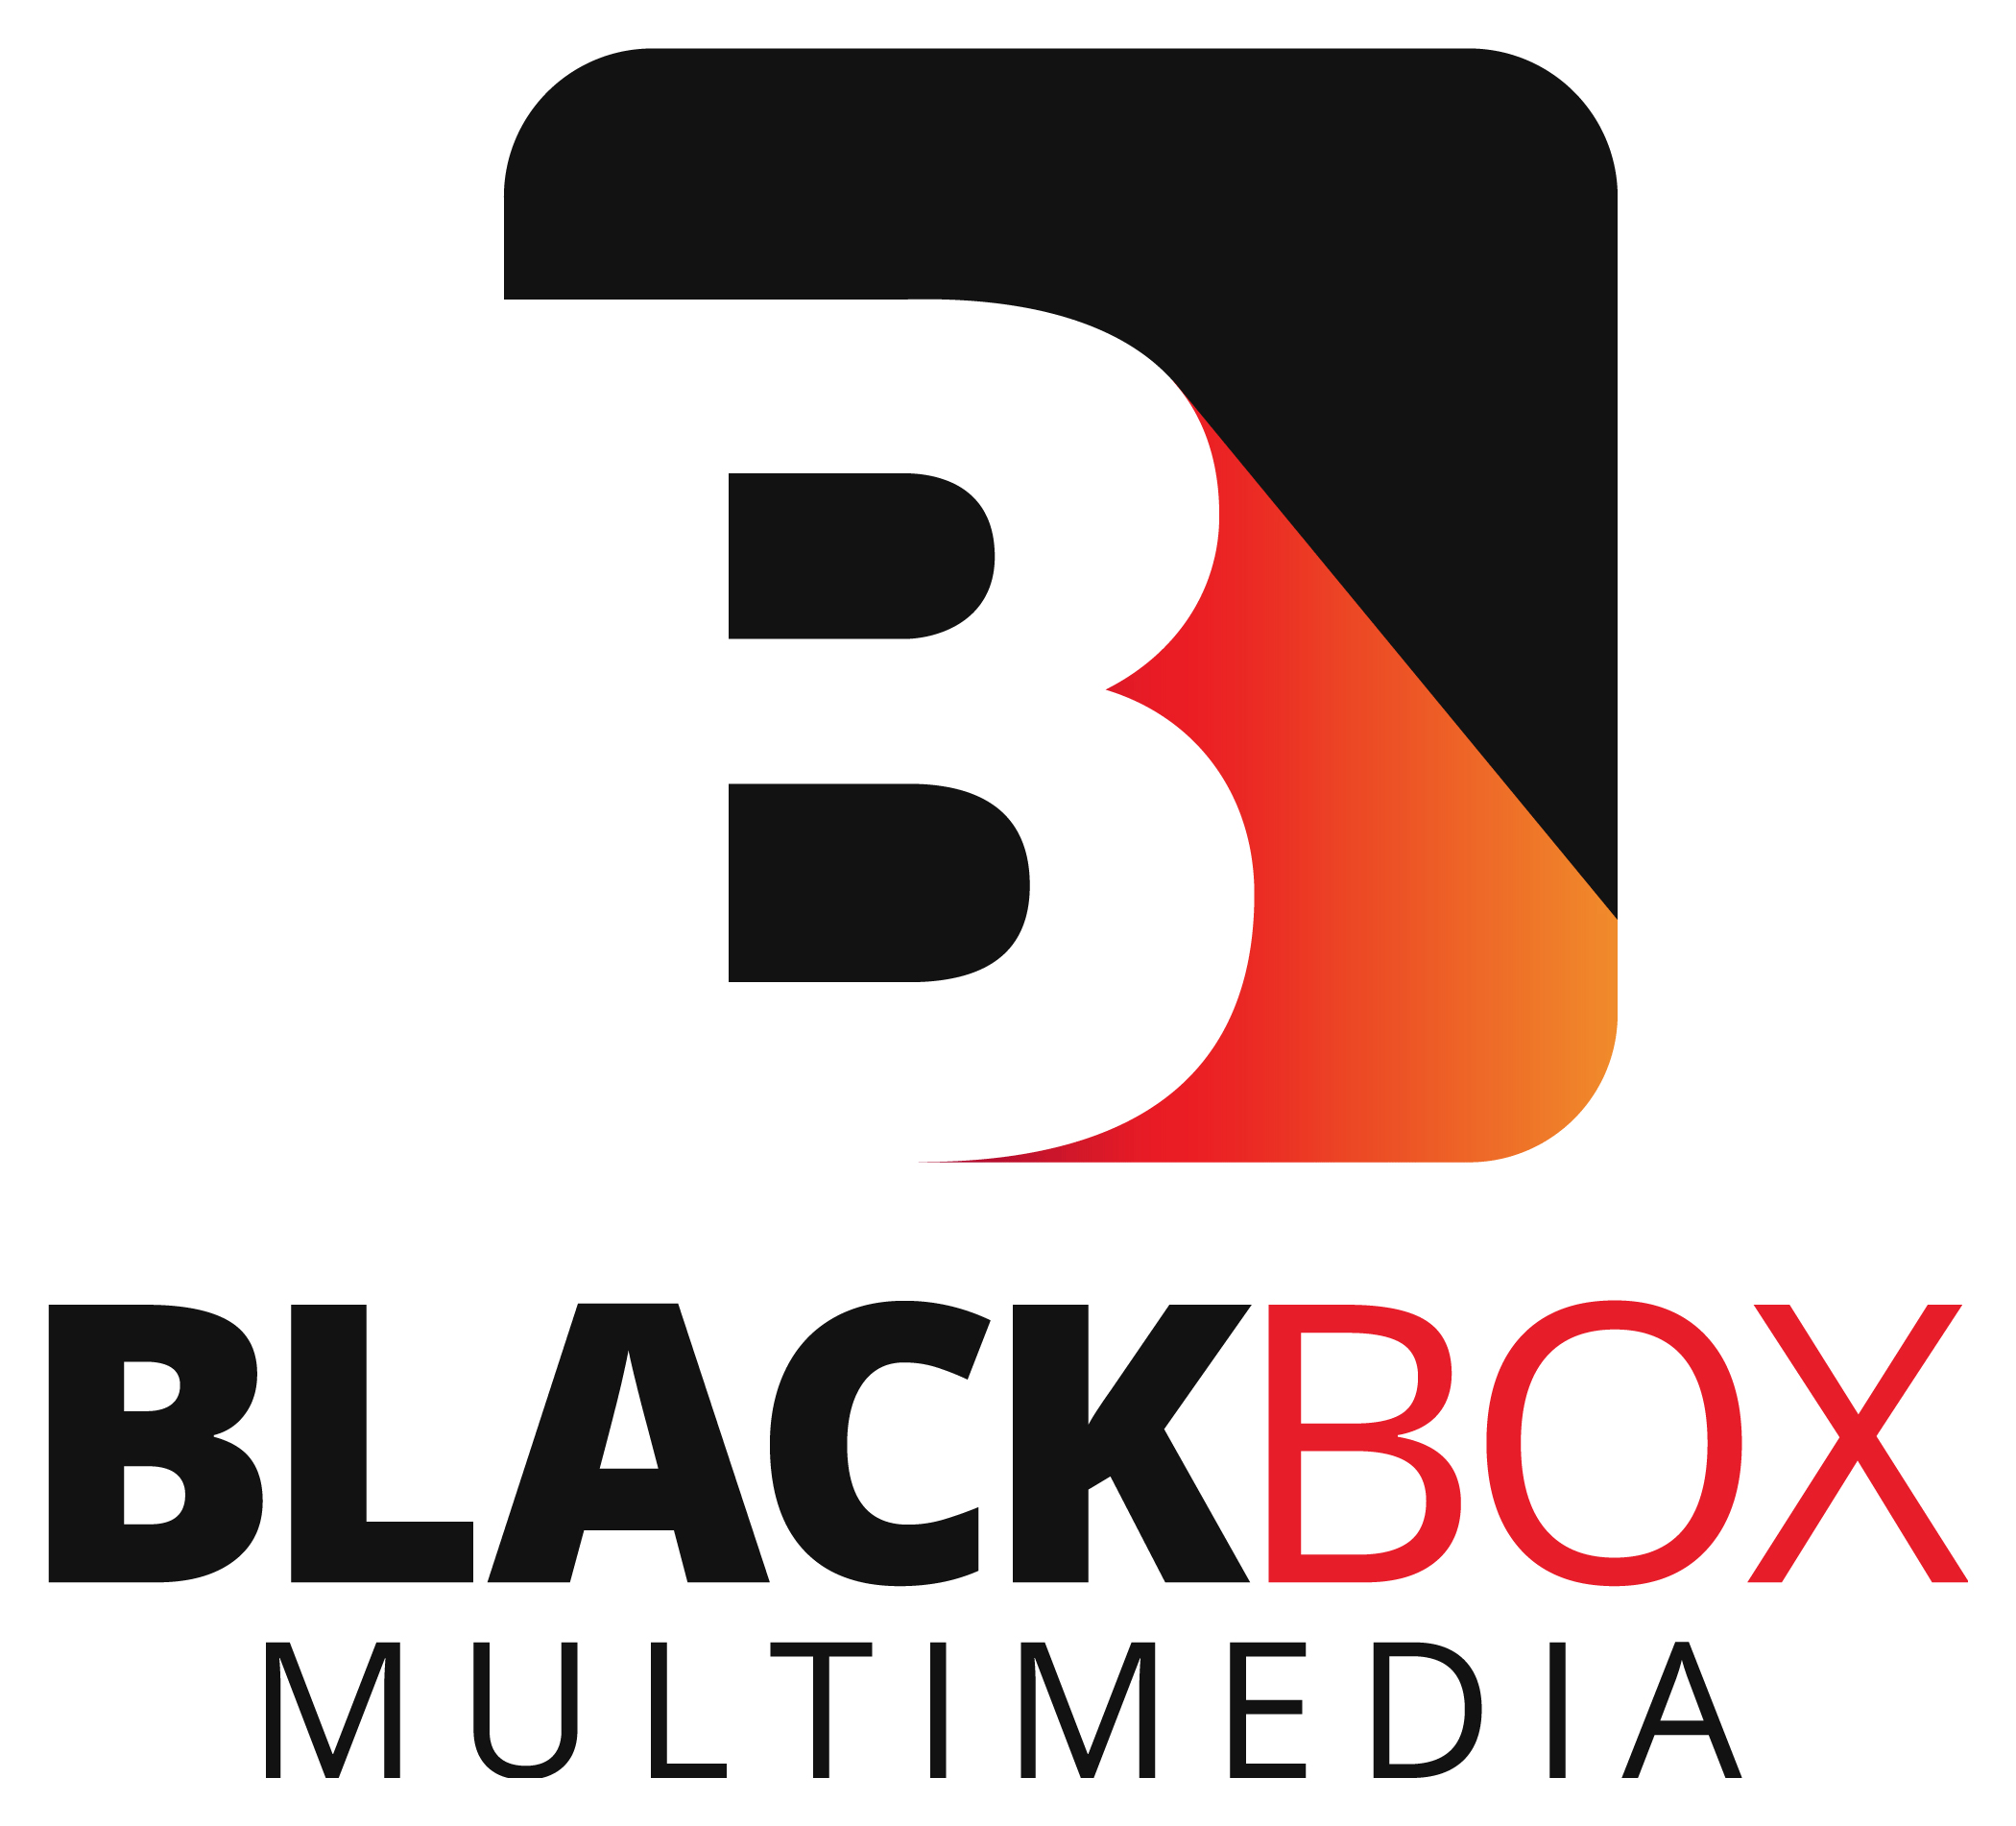 BlackBox Multimedia and The Mediapro Studio team up for new Jeremy Brock and Paul Unwin drama, '58 Seconds'